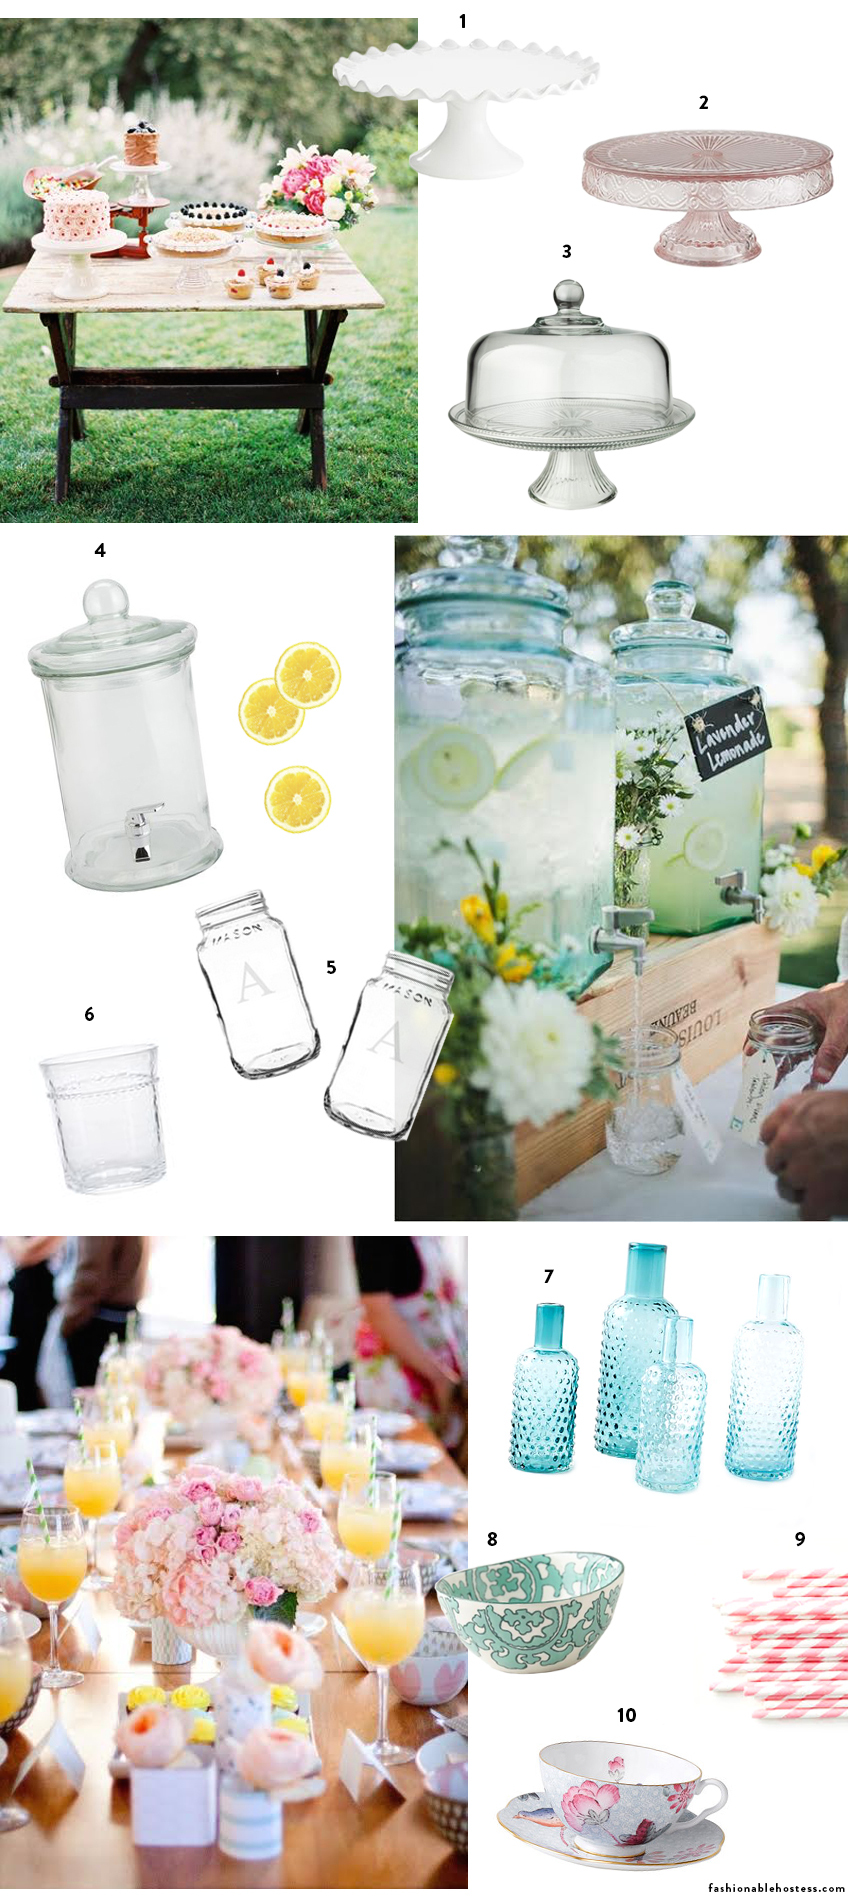 Everything you need to Host a Garden Party 2